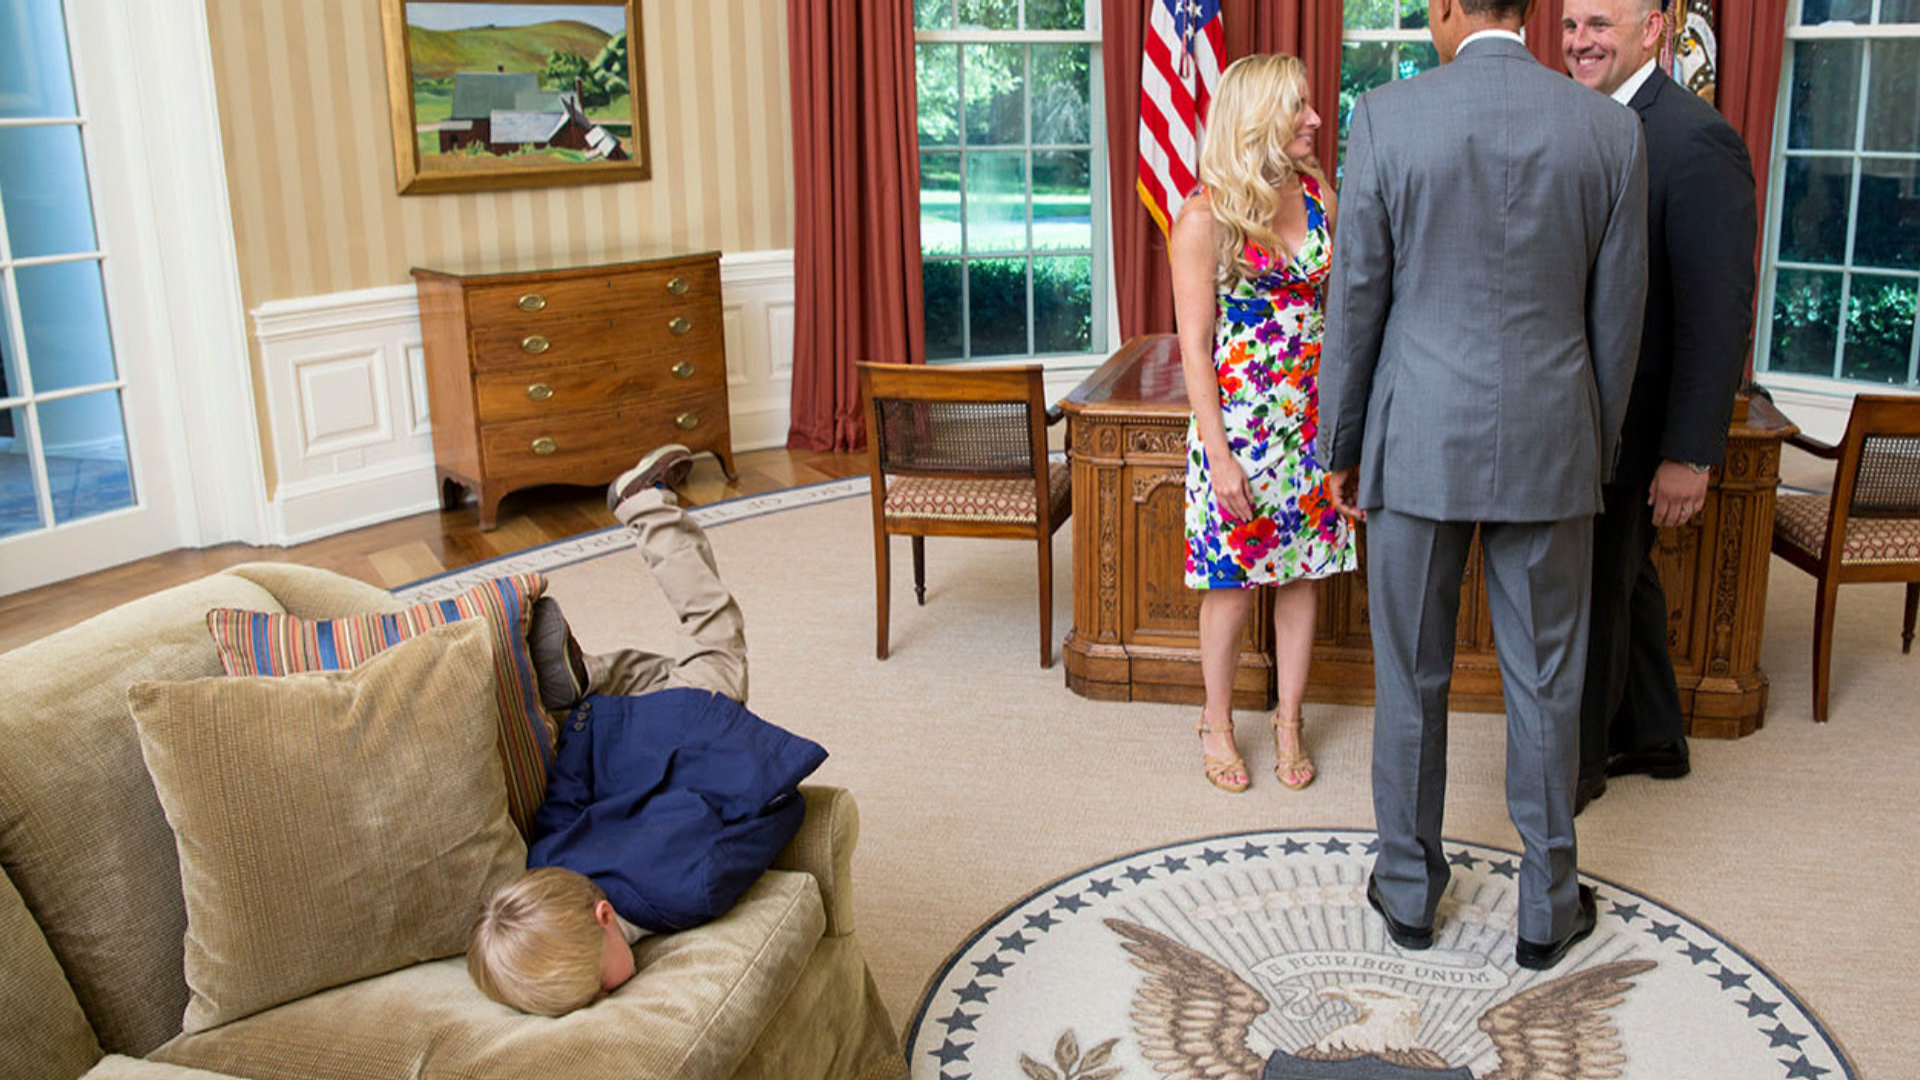 See How A Little Boy Decided To Entertain Himself In Oval Office